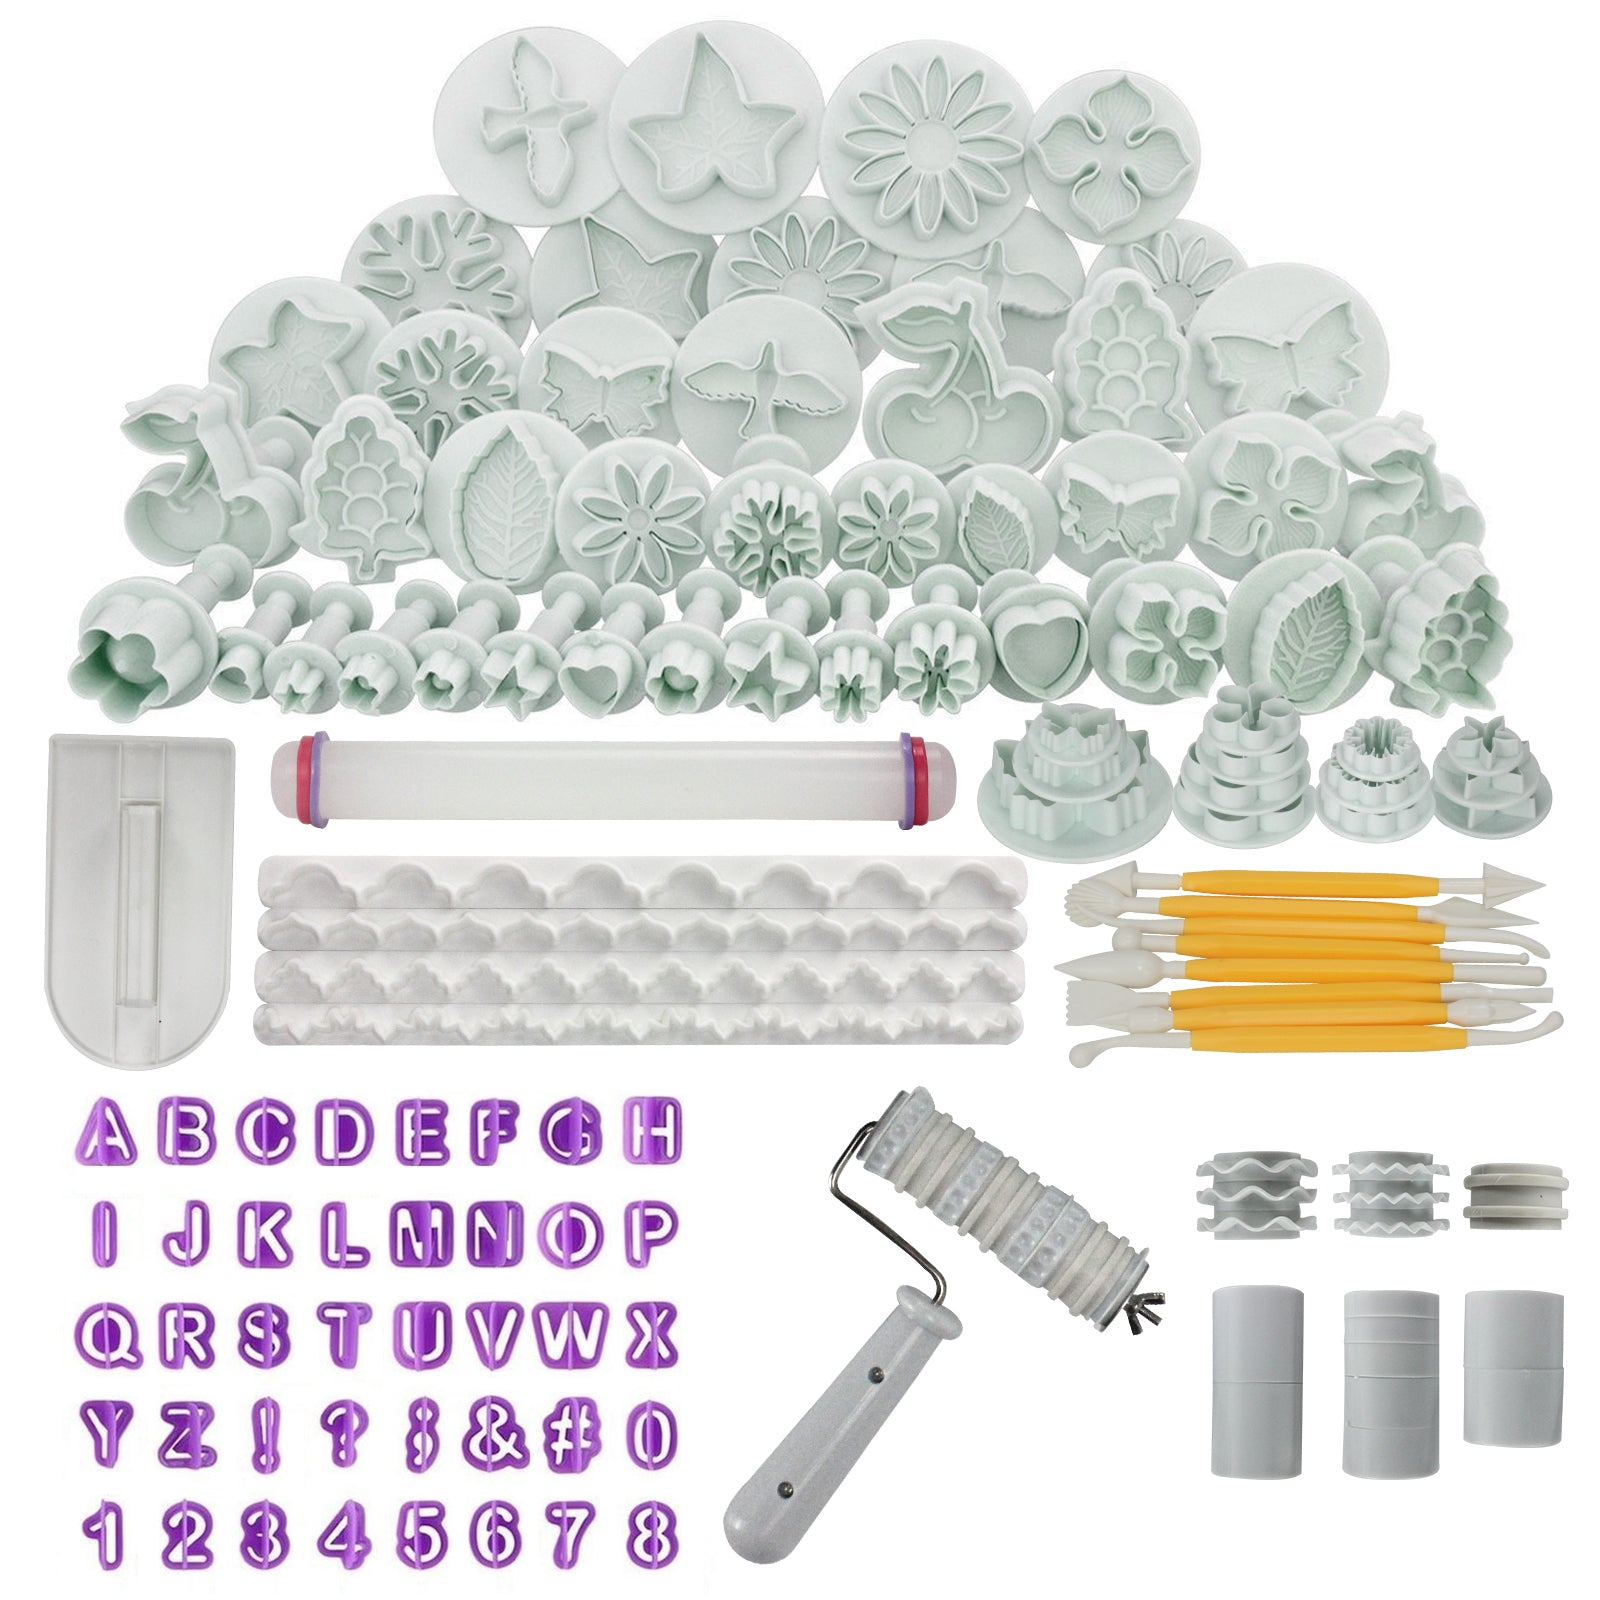 Fondant Cake Decorating Kit 102-count Cutters|Modeling Tools|Roller| Smoother|Alphabet